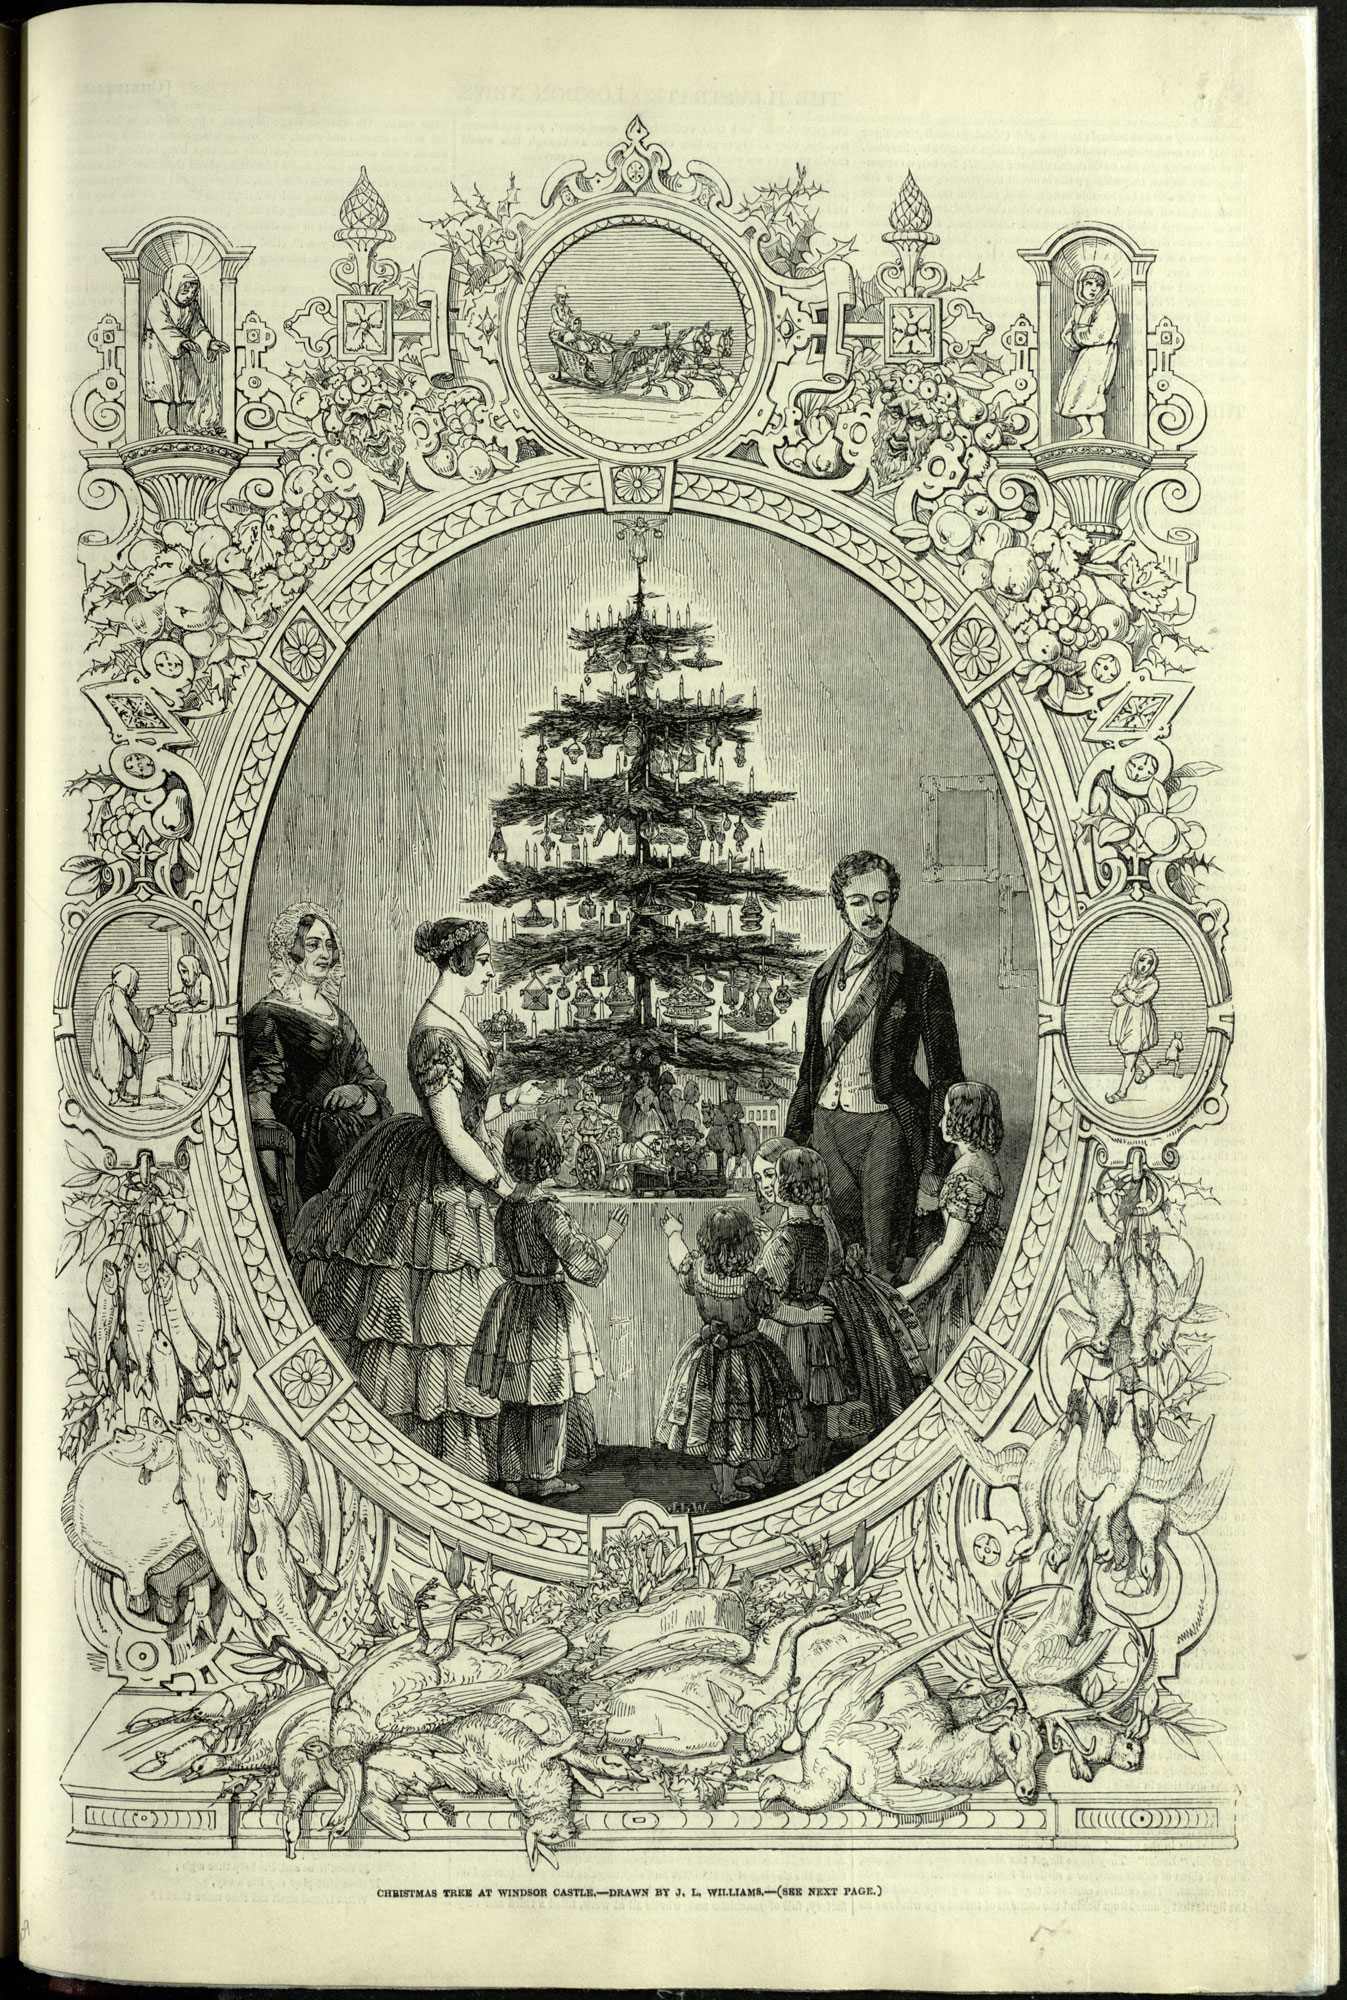 Illustrated London News - Image of Christmas Tree at Windsor Castle